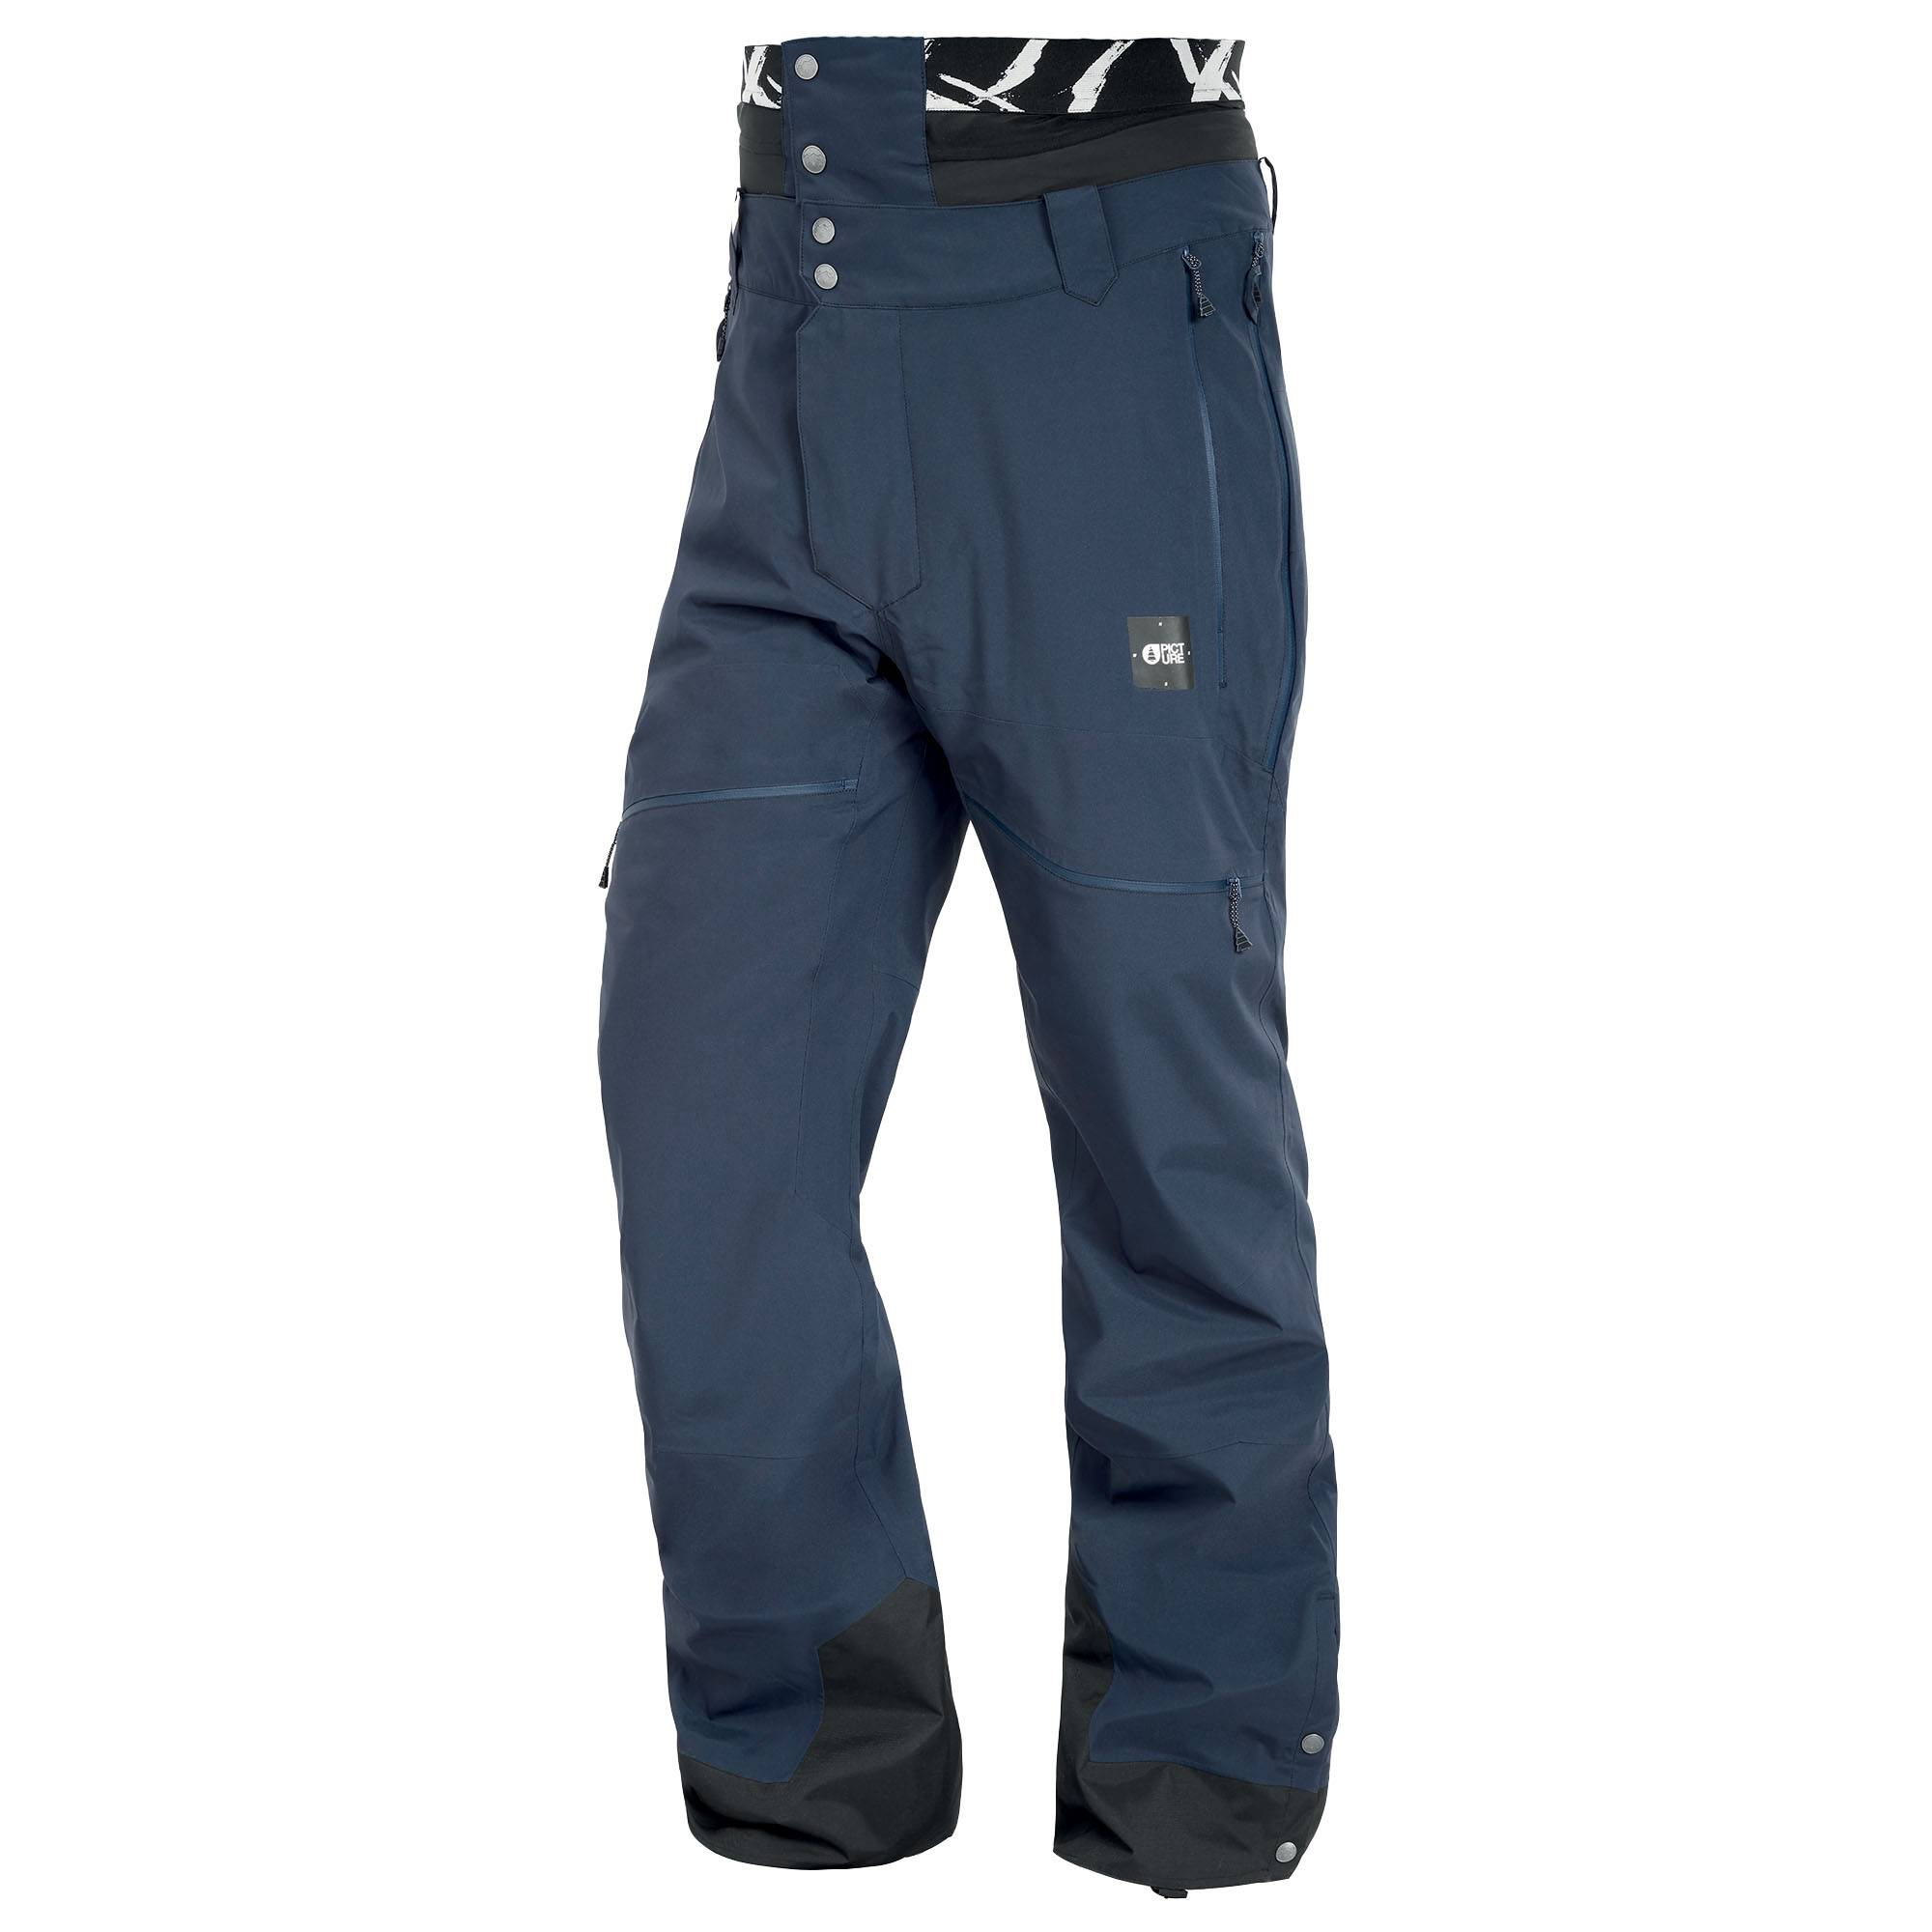 Picture Organic Clothing Men's Naikoon Snow Pants  - Dark Blue - Size: Extra Large